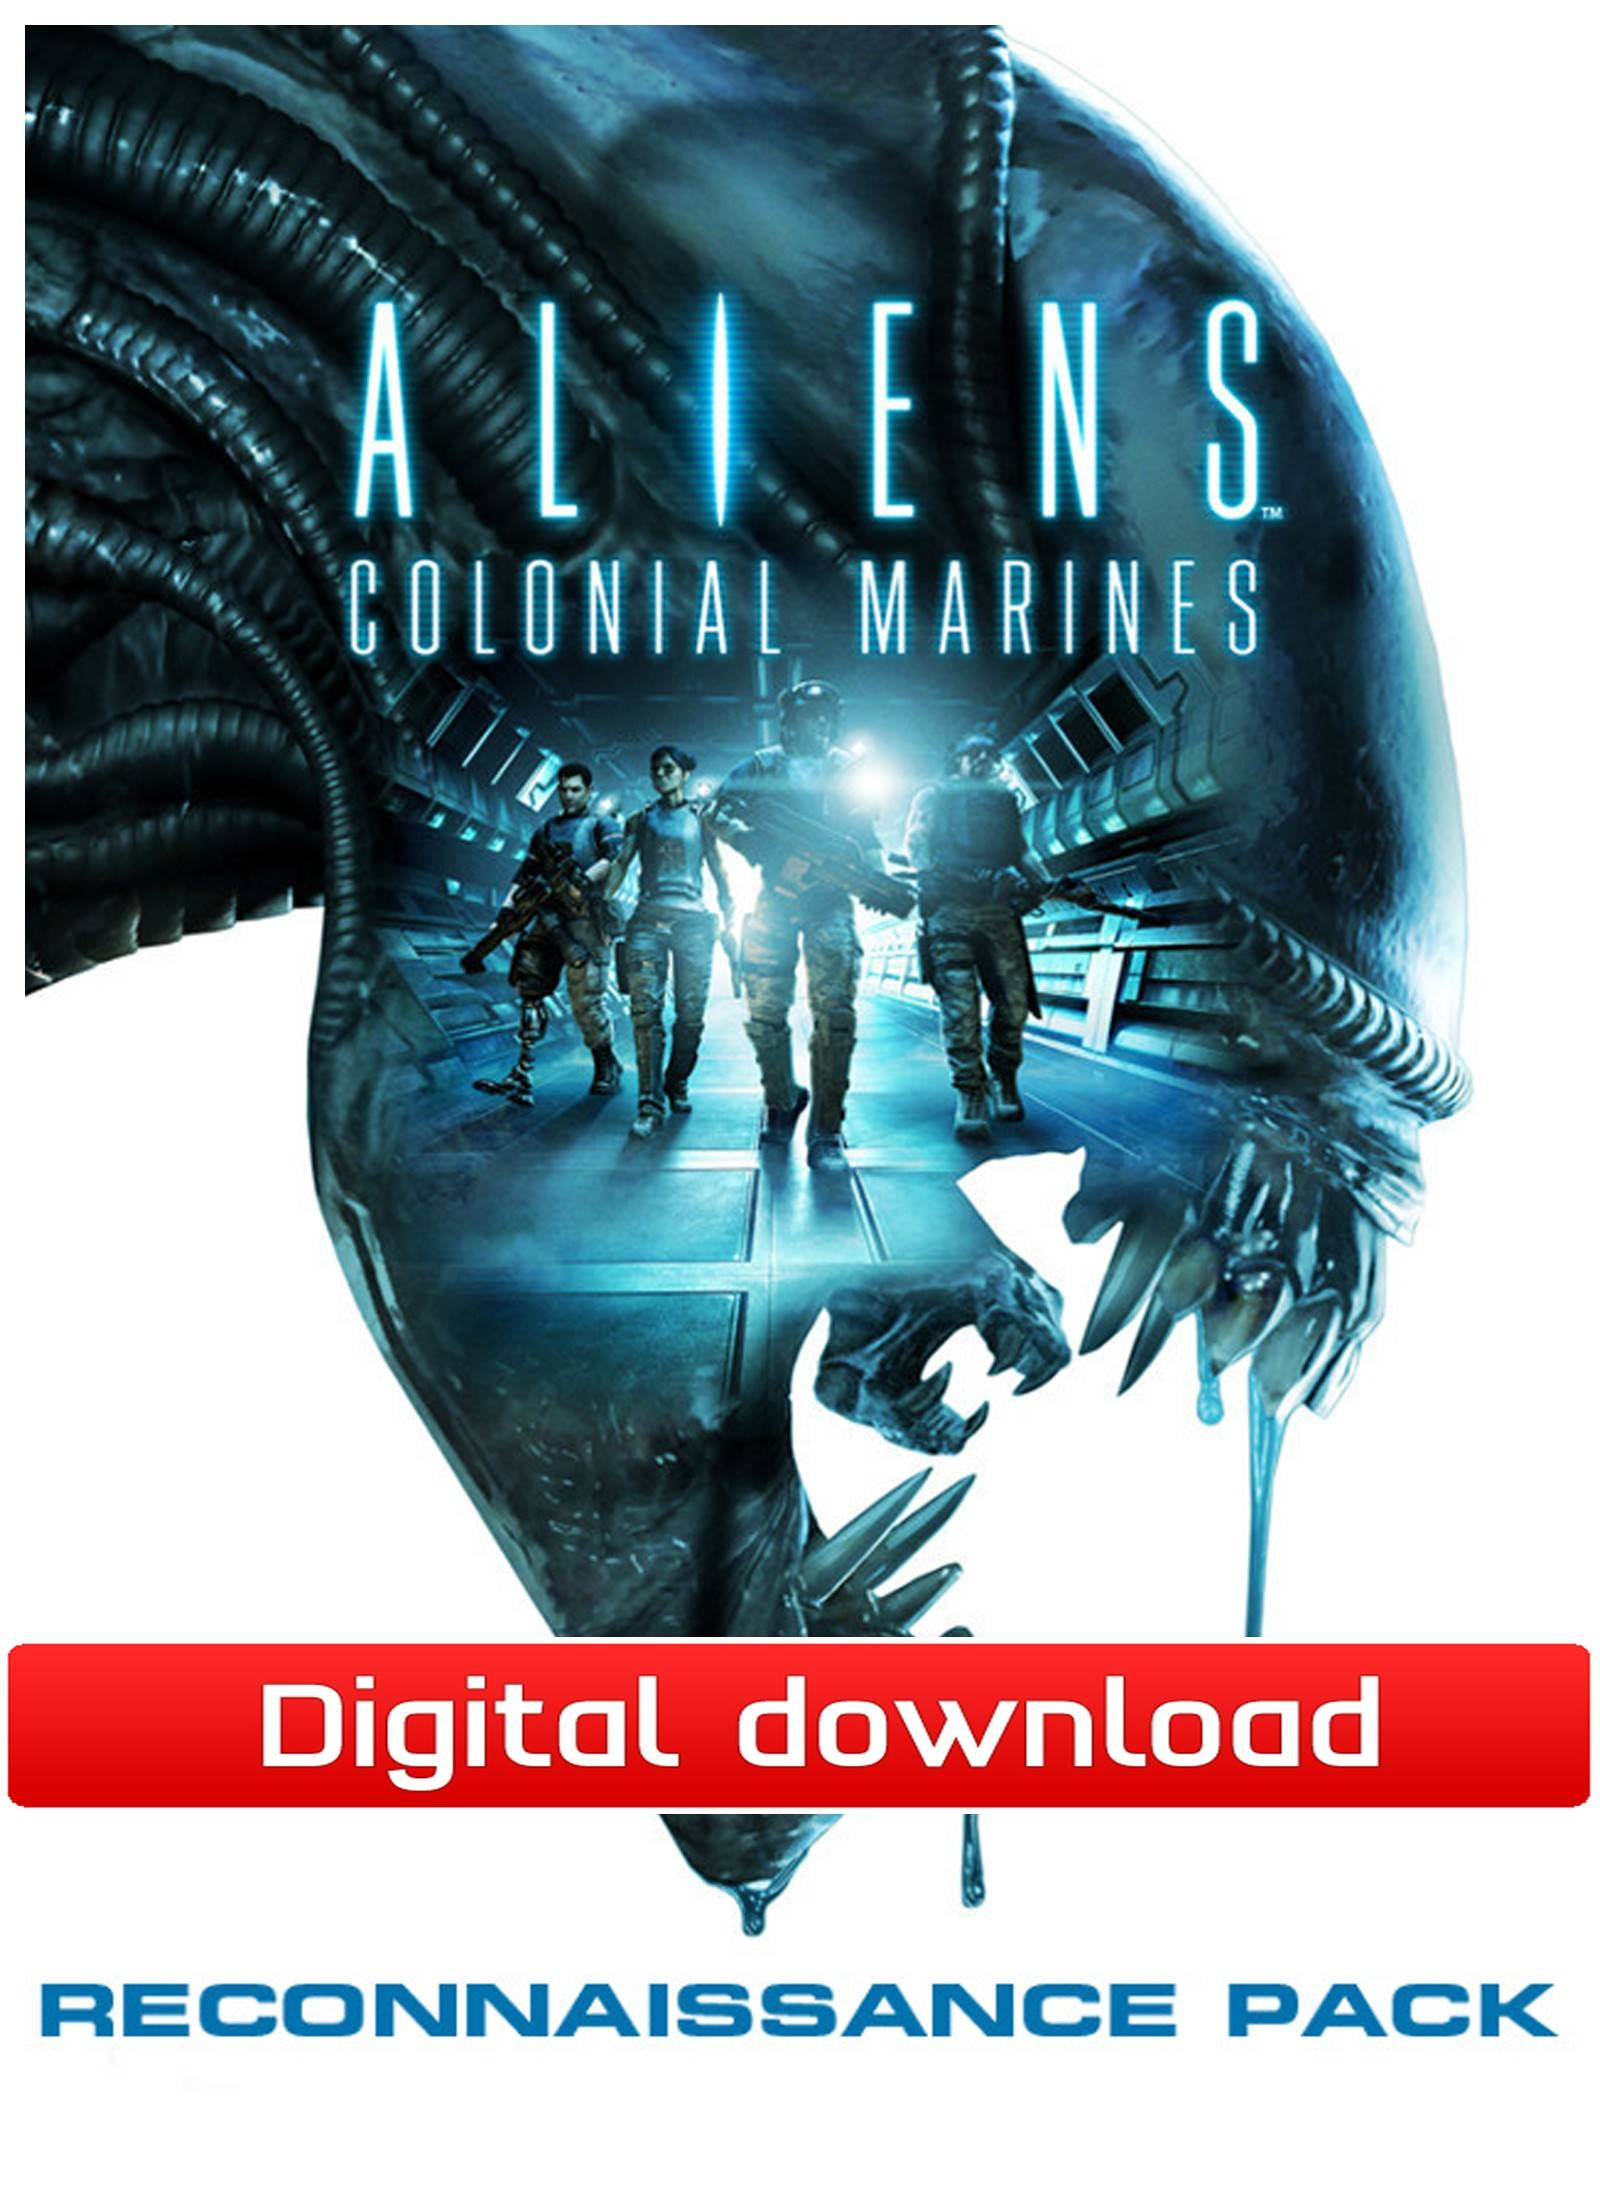 Sega Aliens: Colonial Marines - Reconnaissance Pack(Downlod)